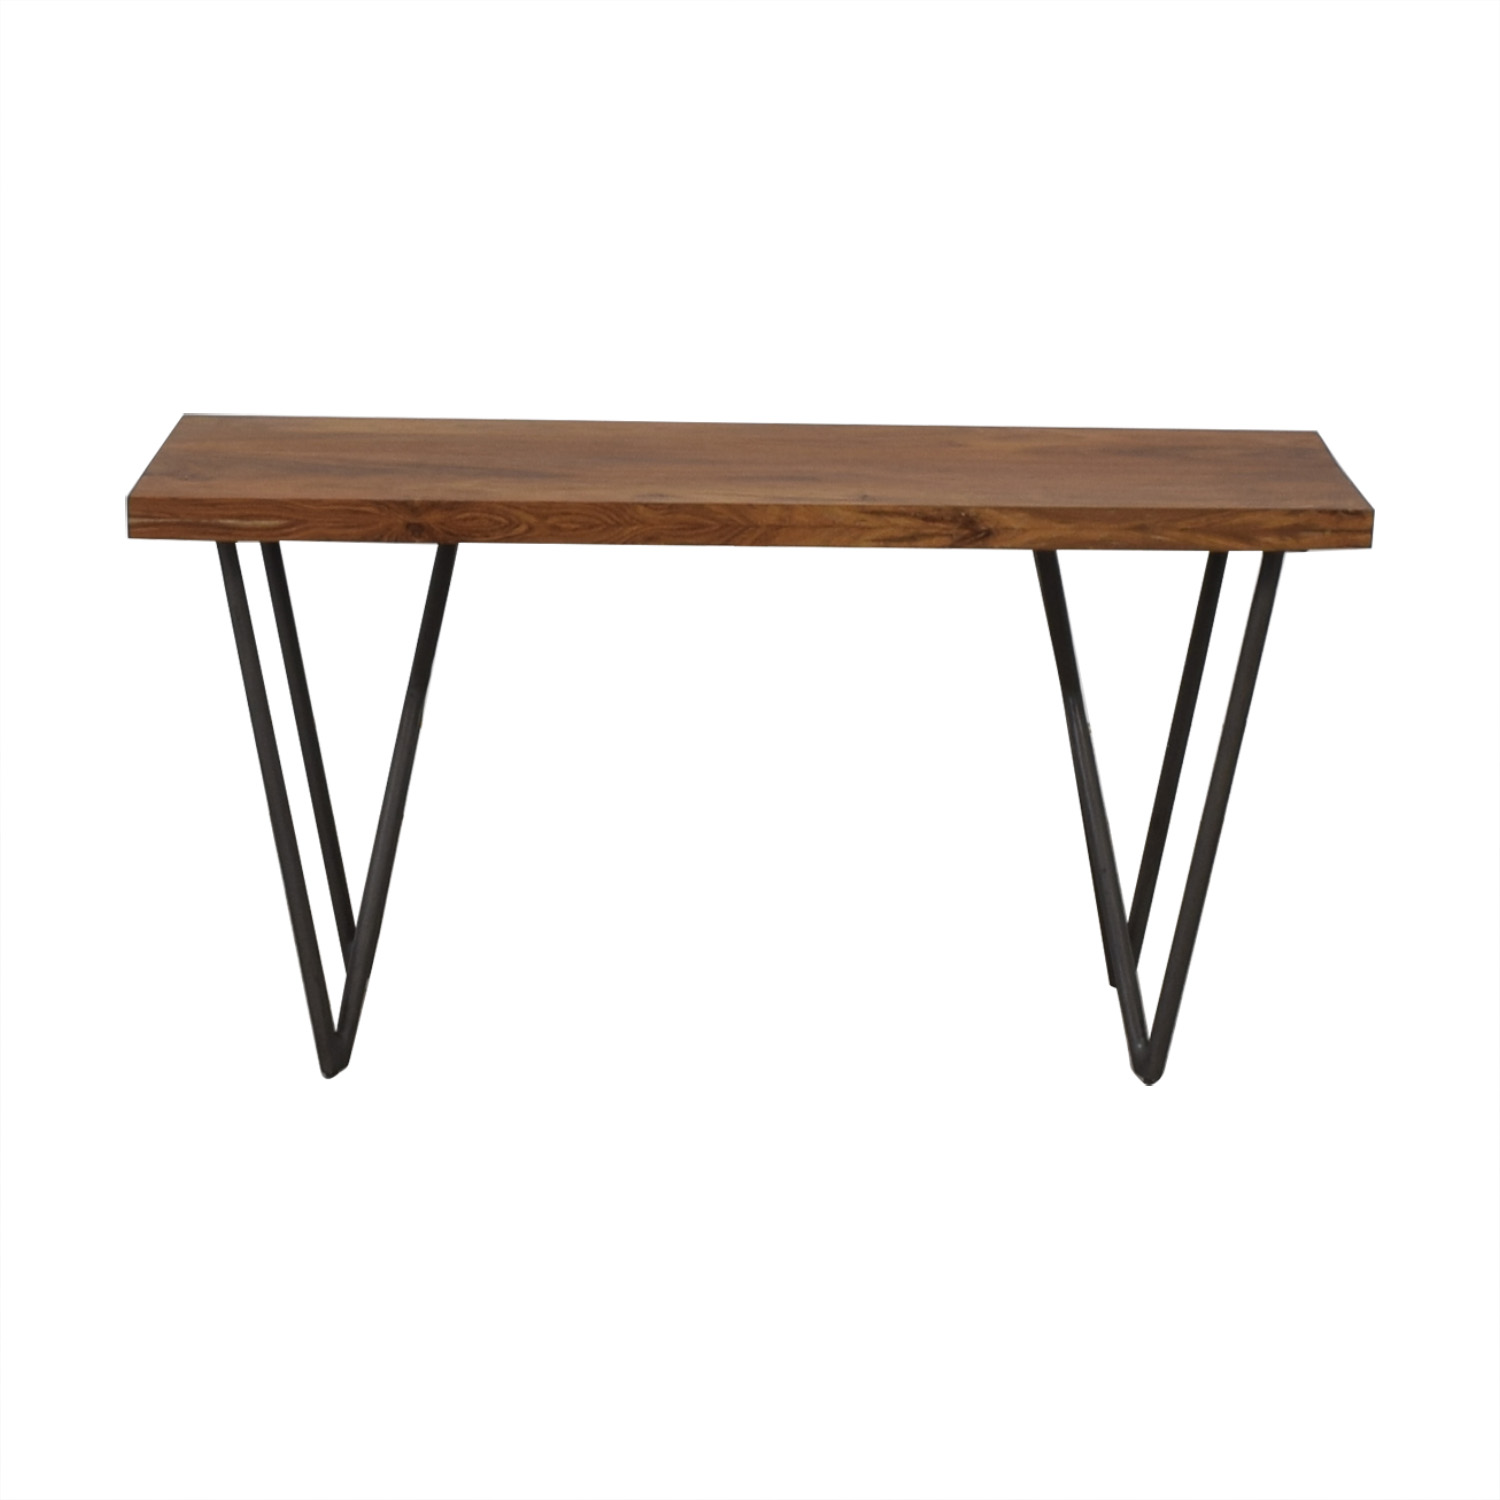 CB2 CB2  Wood and Green Bench discount